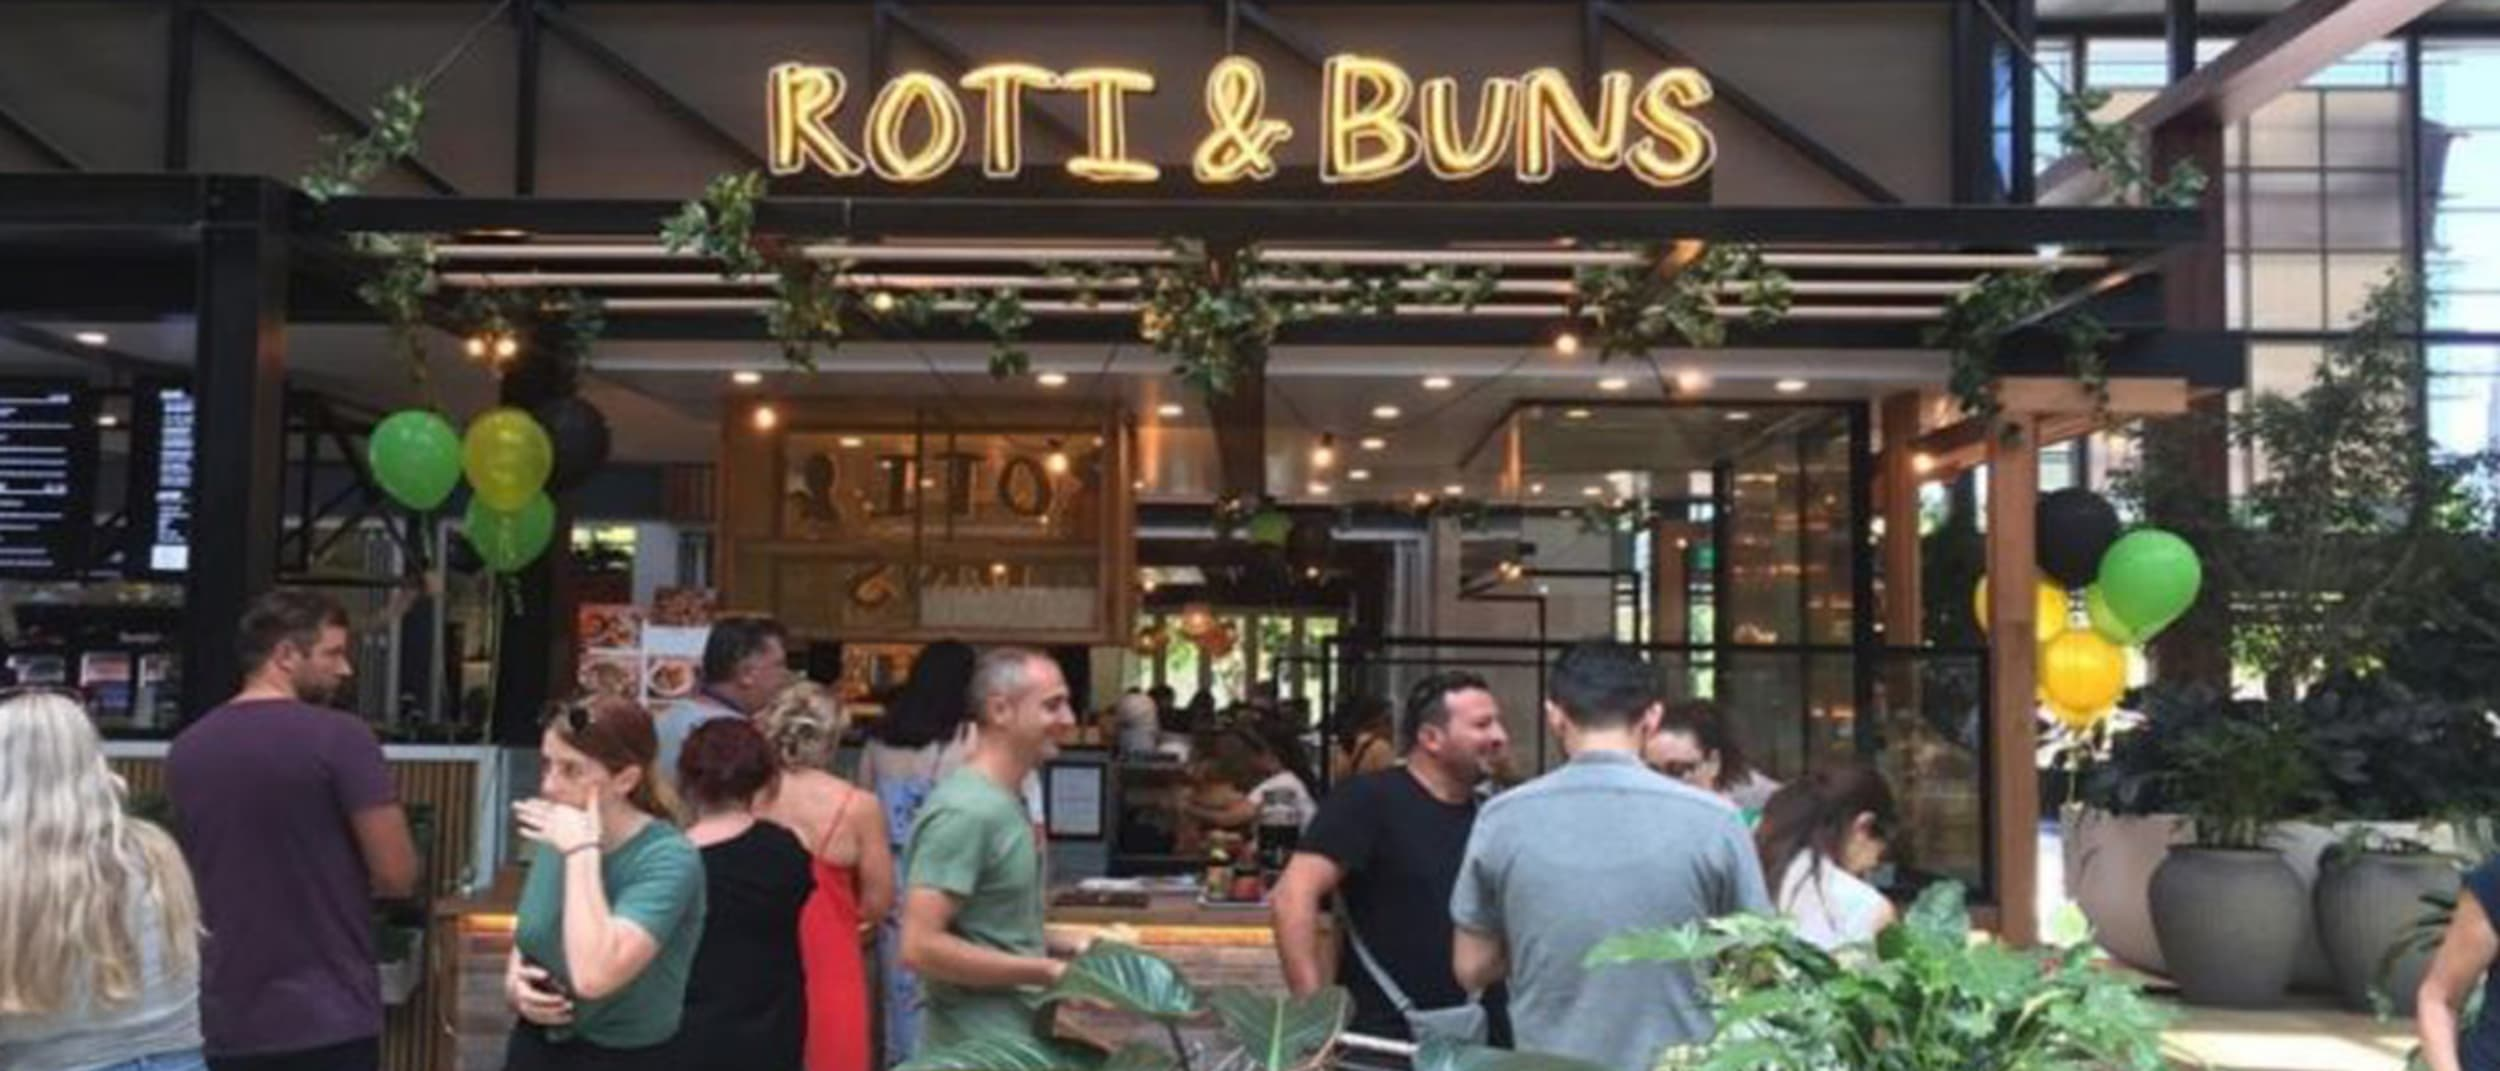 Roti & Buns is open for business!